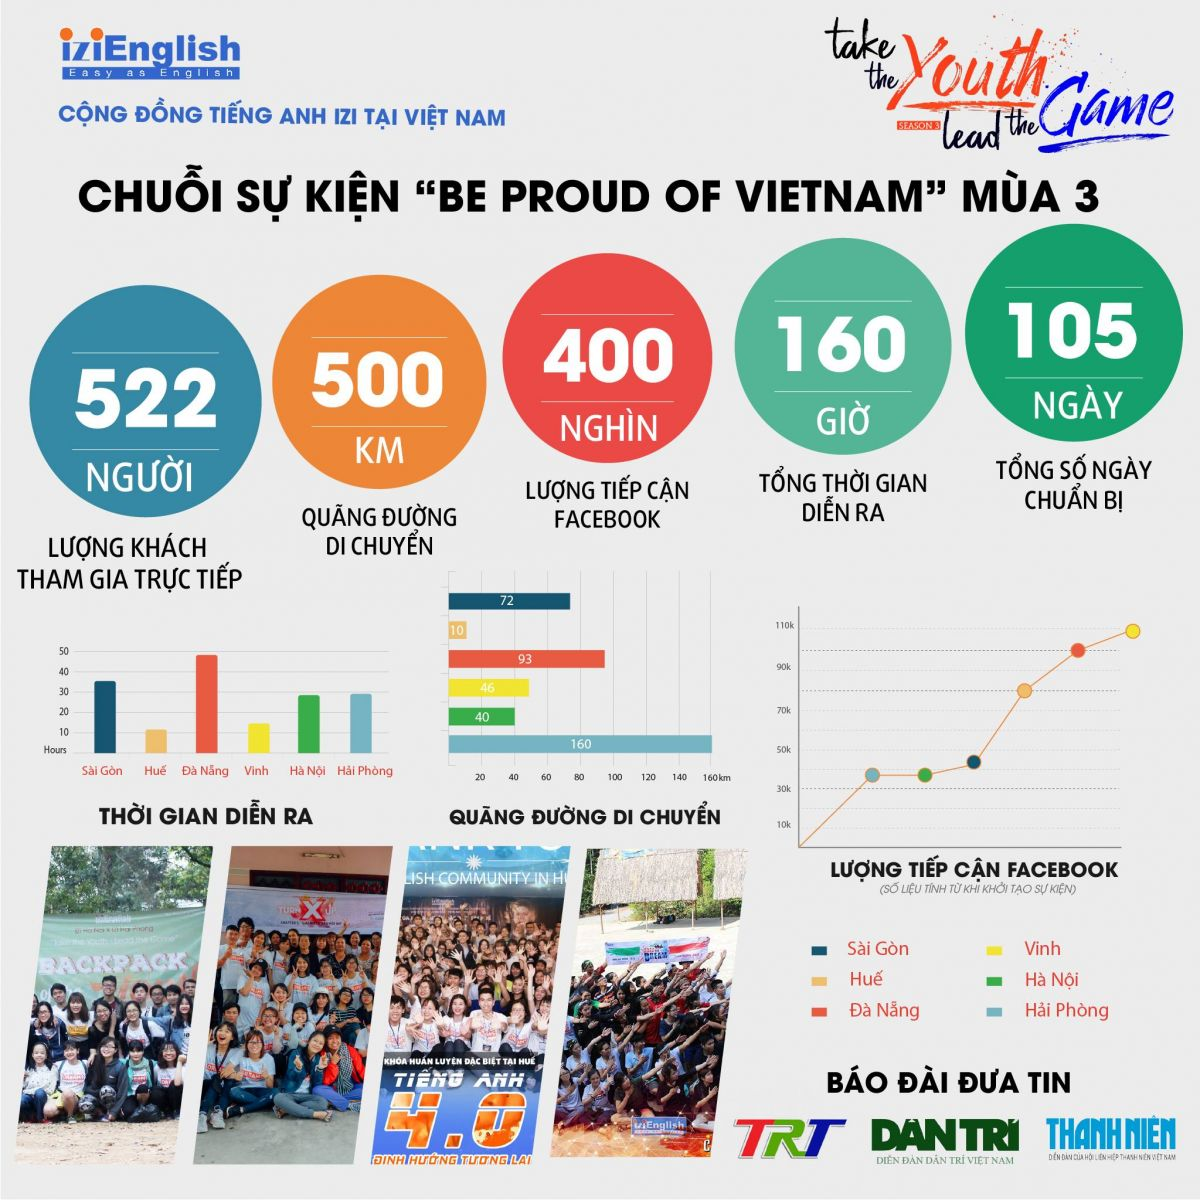 TAKE THE YOUTH, LEAD THE GAME - Be Proud Of Vietnam Season 3, 7th Birthday IZI English Community